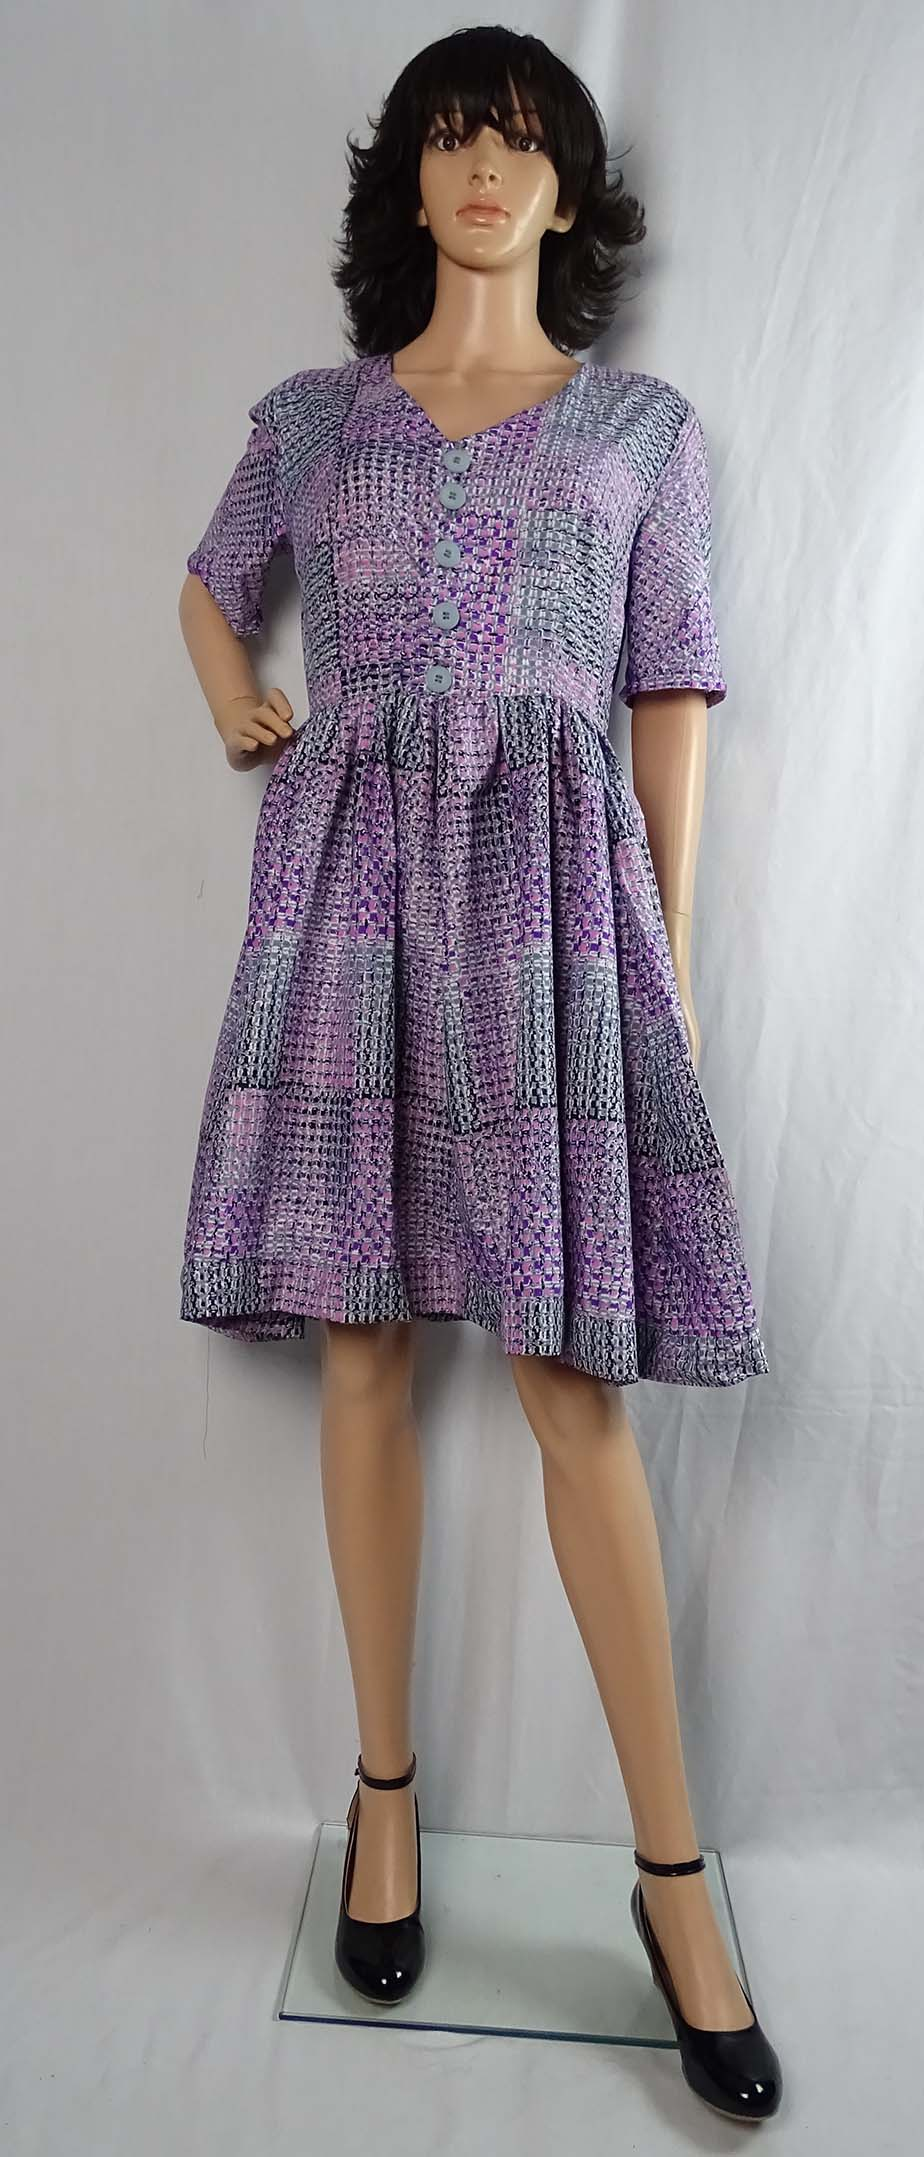 Wax print Simplicity 1459 top and skirt 5 by Anino